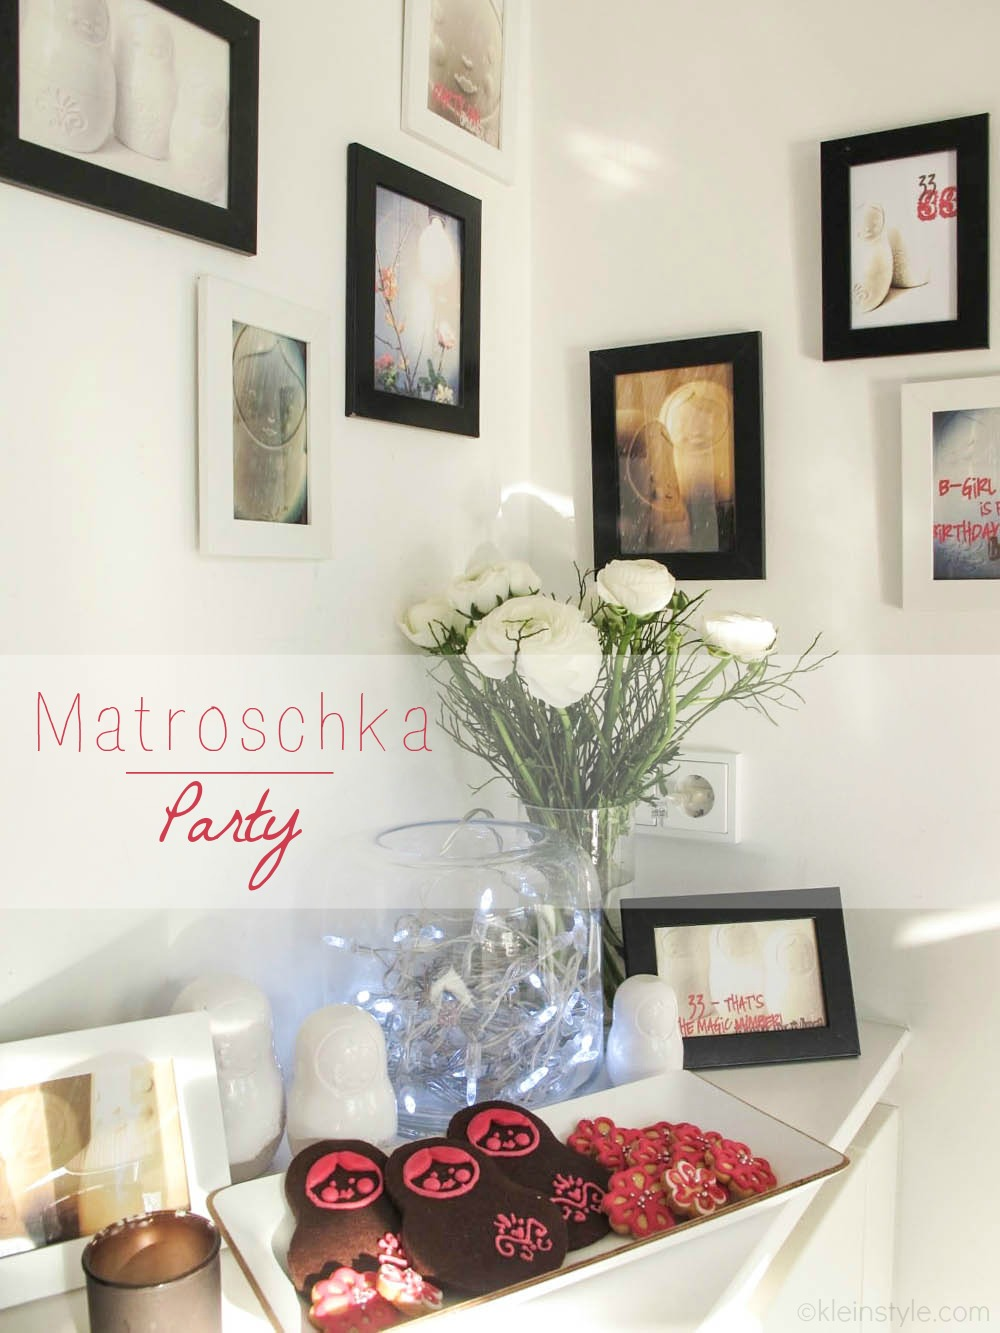 (Kinder)Geburtstag : Matroschka Party!